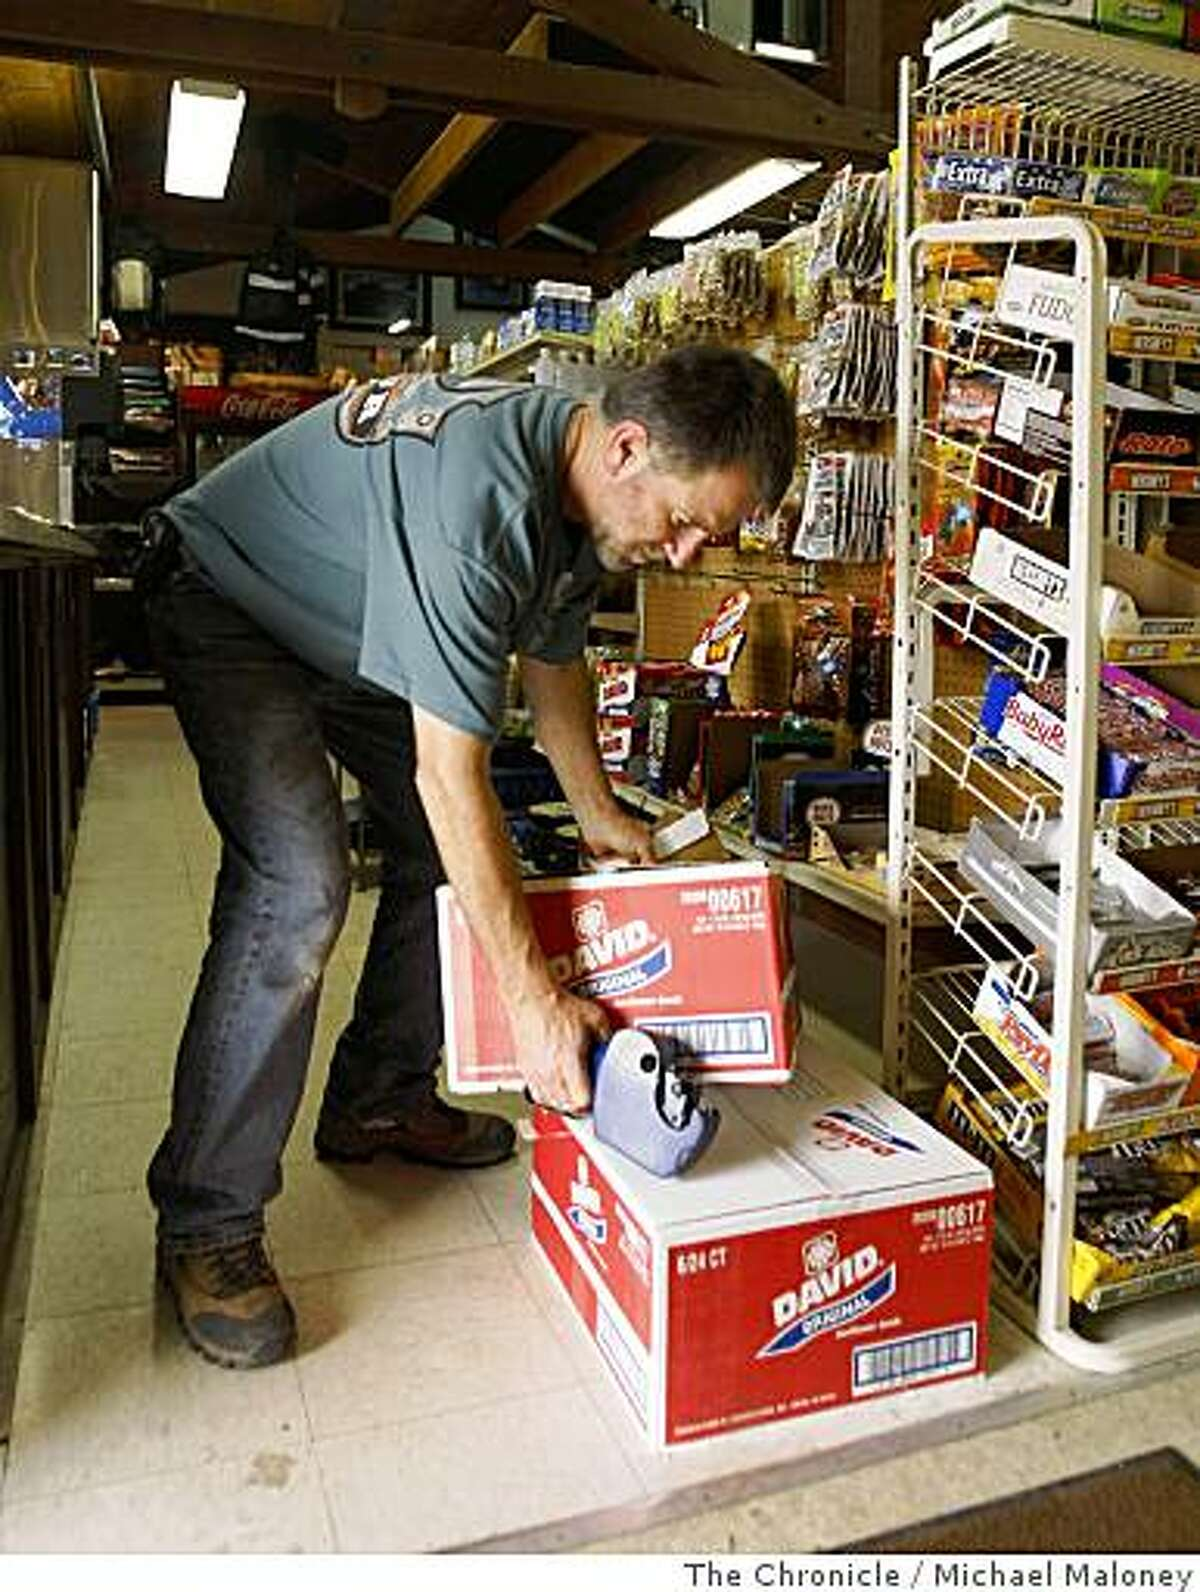 Kurt Mayer, co-owner of the Big Sur Center deli and store in Big Sur, Calif., replenishes his stock of sunflower seeds which he found was popular with the firefighters. Nearly 2,000 firefighters try to beat back the out-of-control Basin Complex wildfire near the coastal tourist town of Big Sur on July 6, 2008.Photo by Michael Maloney / The Chronicle